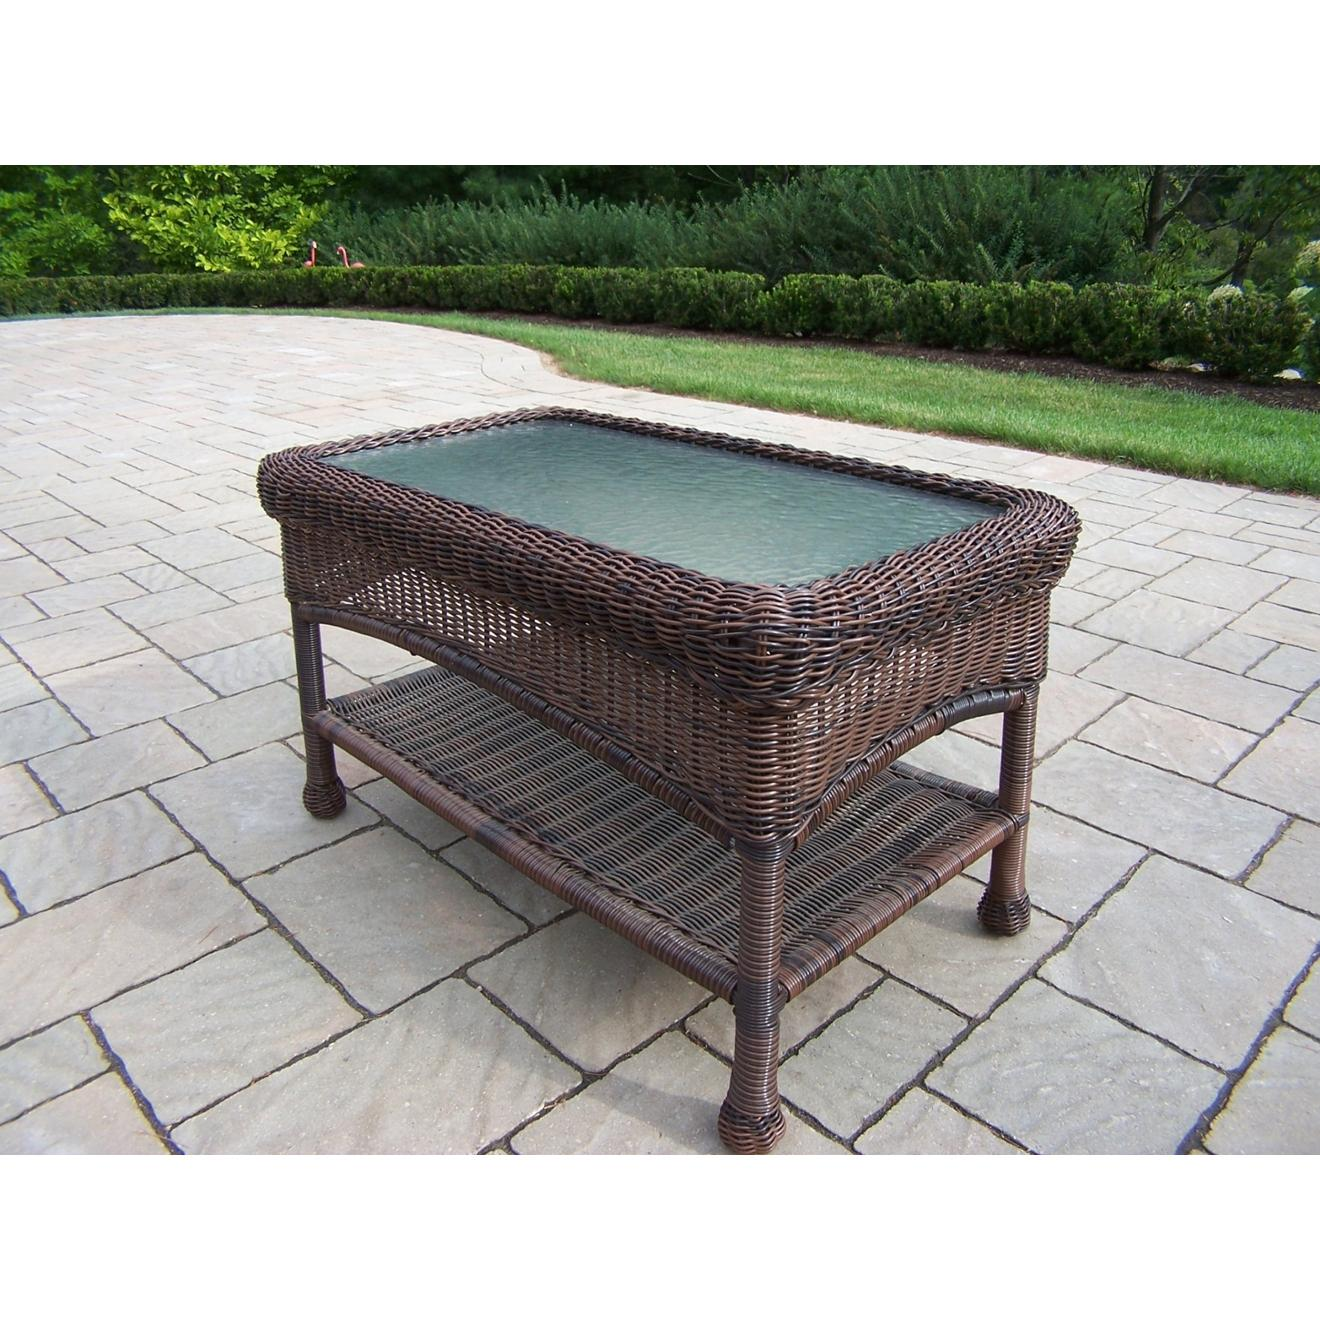 Oakland Living Resin Wicker Patio Coffee Table With Glass Top - Coffee 2612398